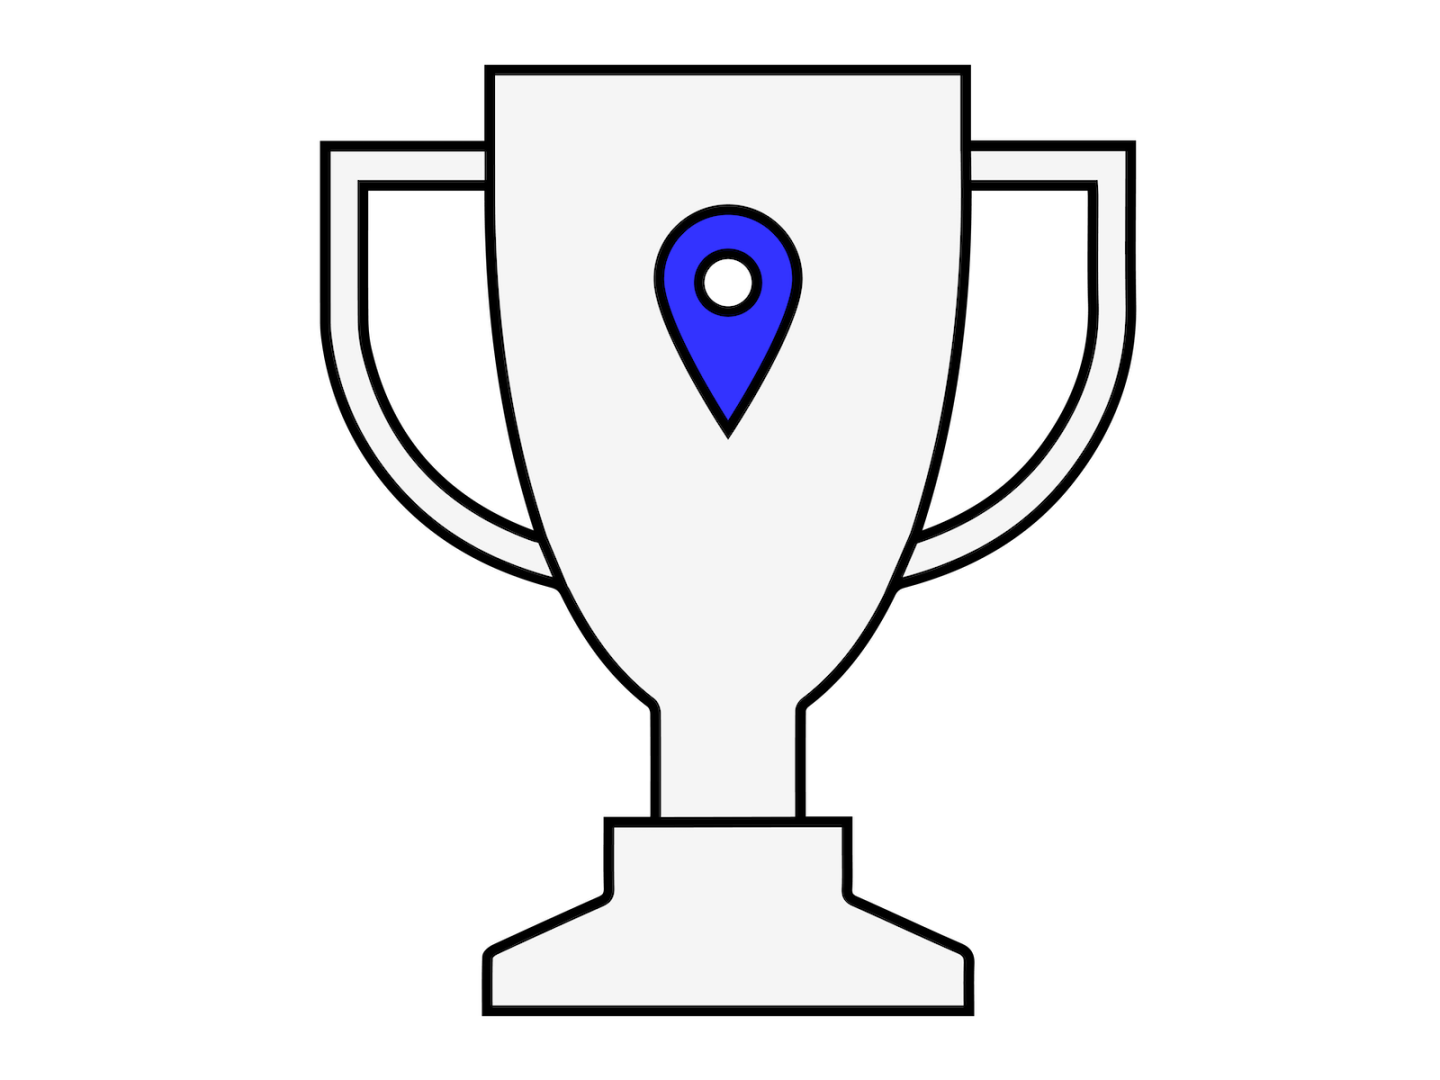 An illustration of a trophy with a location pin in the middle of it